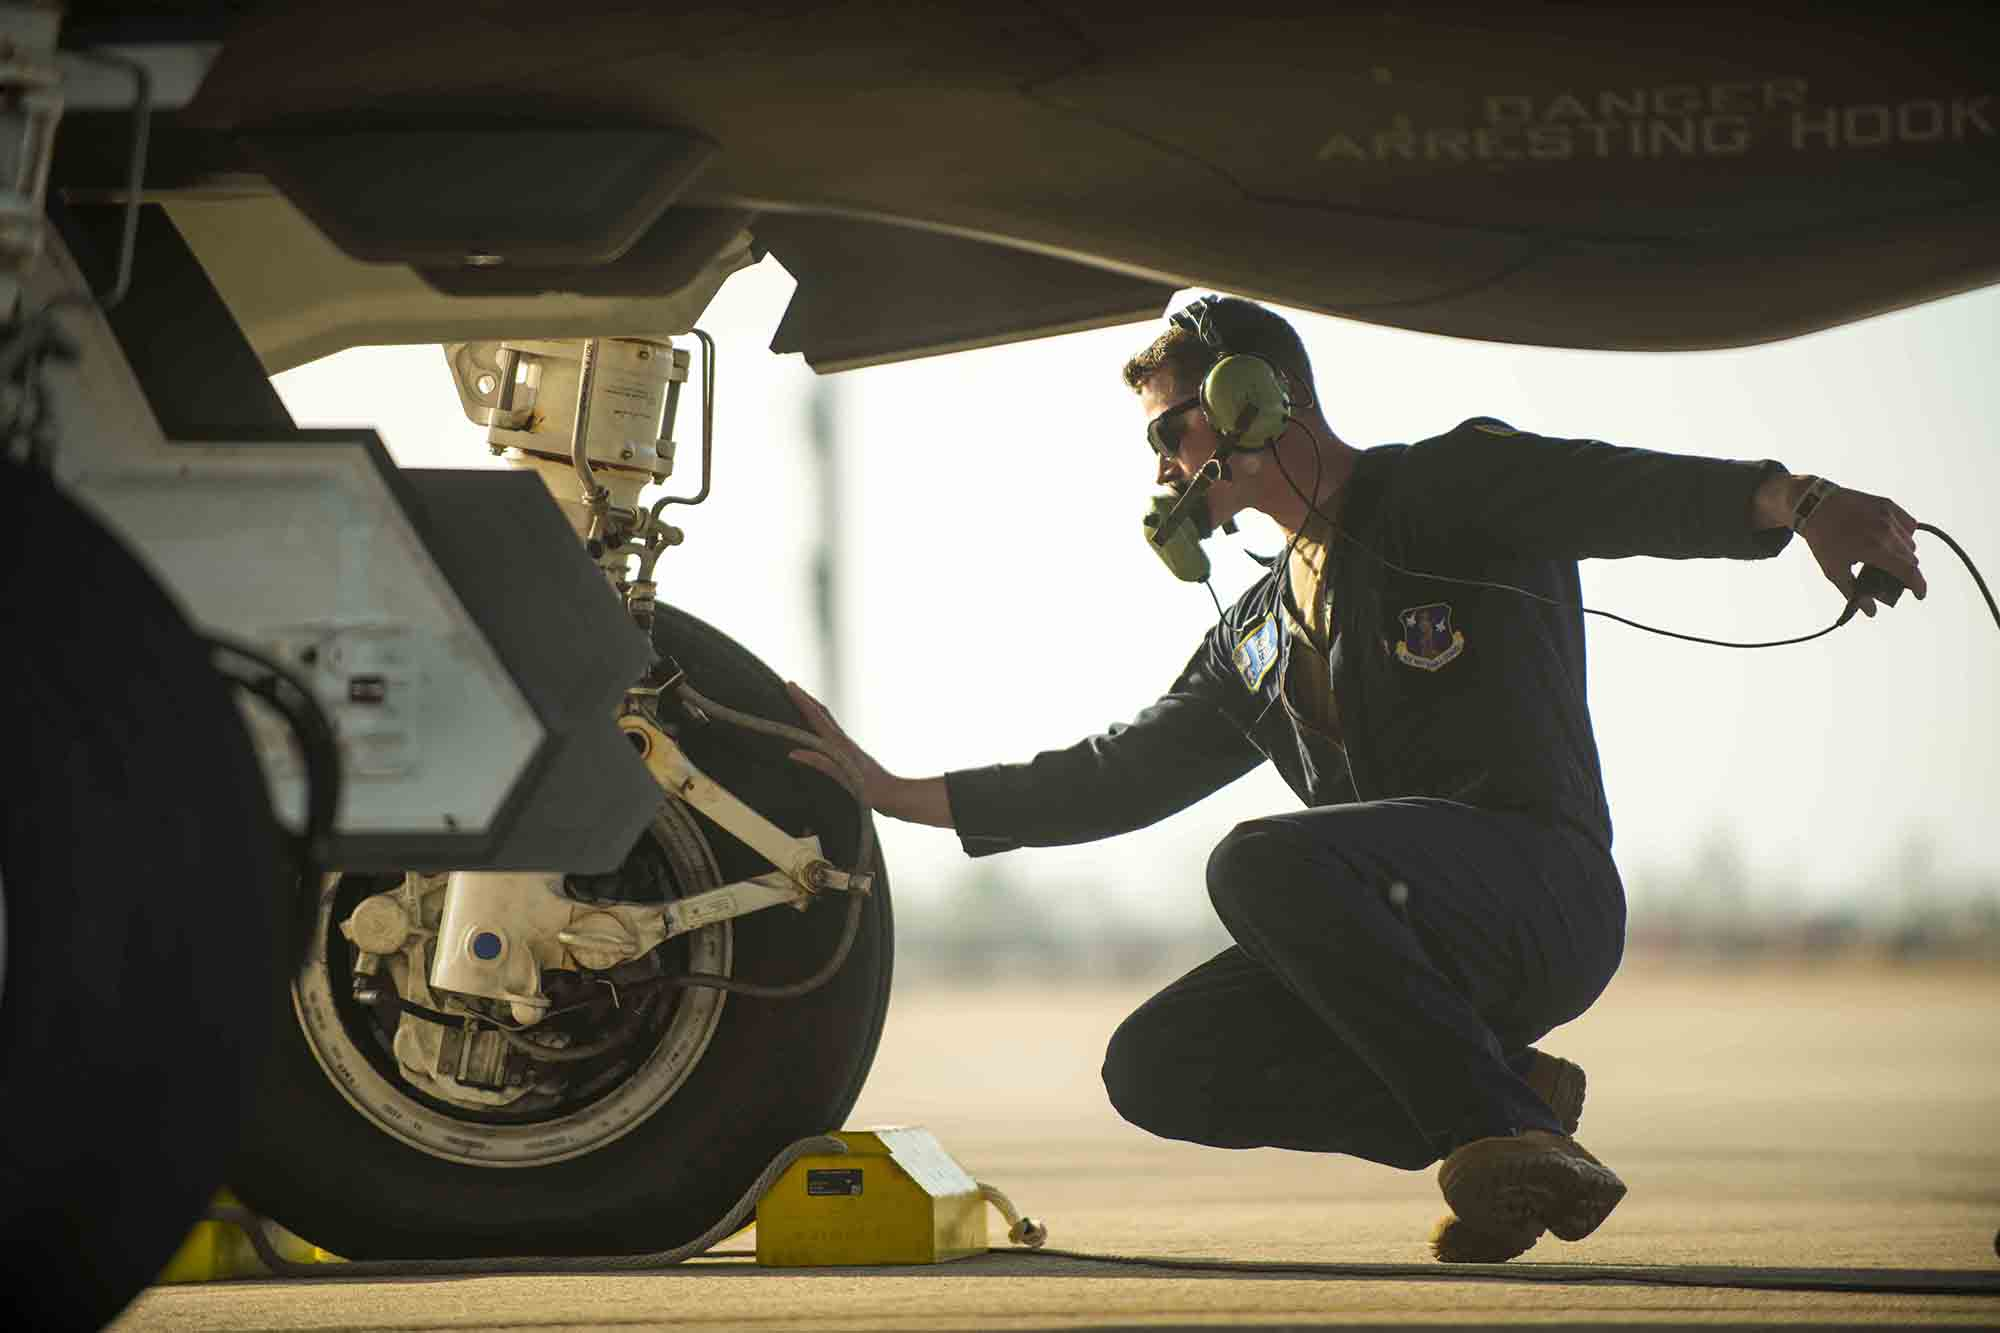 Staff Sgt. Joe Payea, Vermont Air National Guard, prepares to launch an F-35A Lightning II during training at Tyndall Air Force Base, Fla., Jan. 21, 2021. (Master Sgt. Michael Davis/Air National Guard)